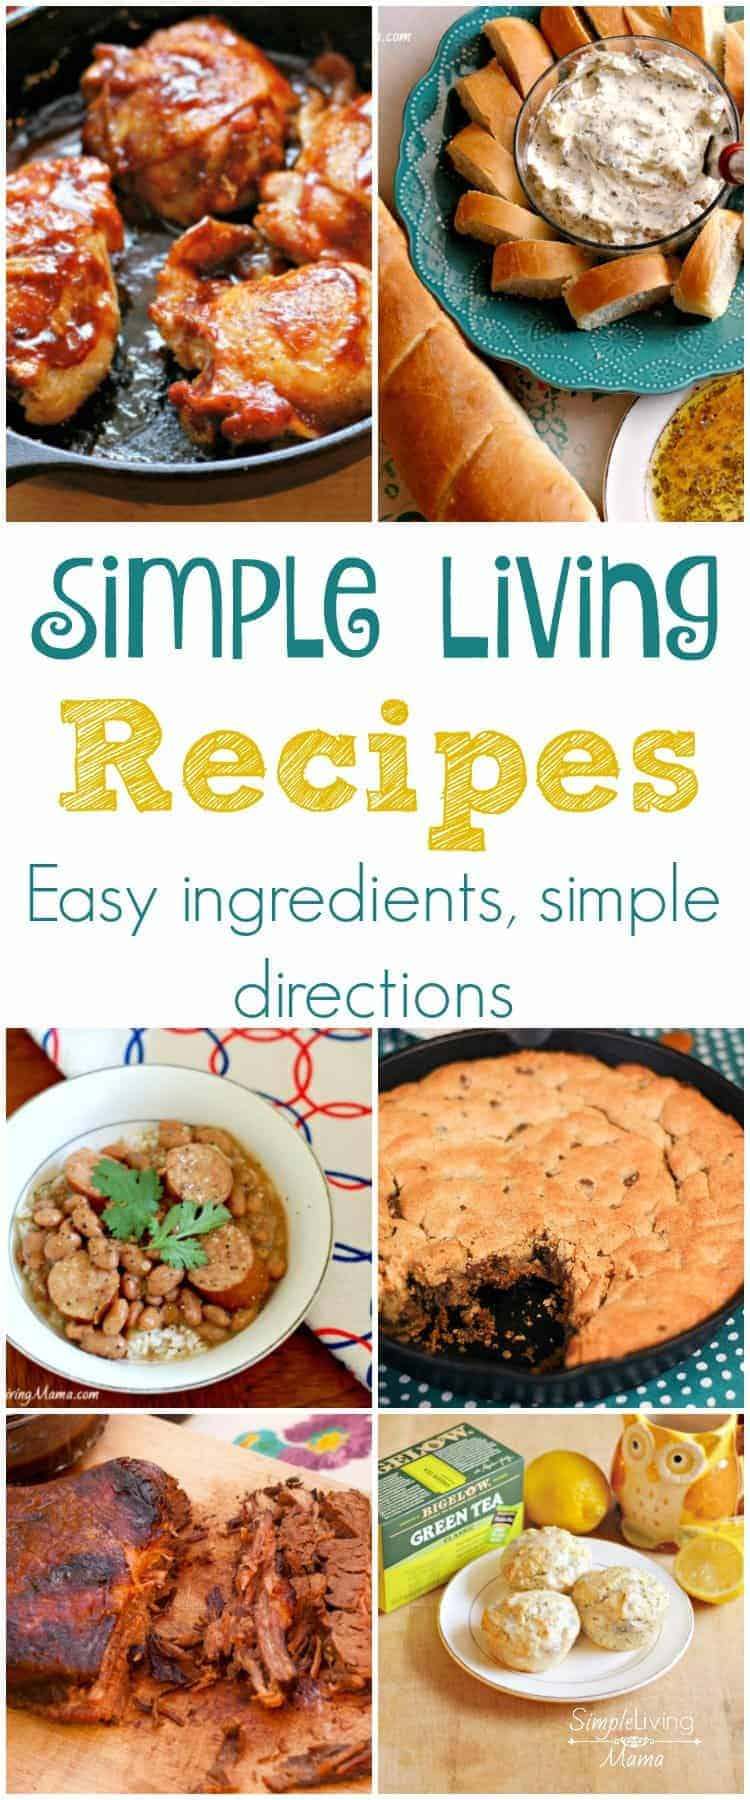 Simple Living Recipes